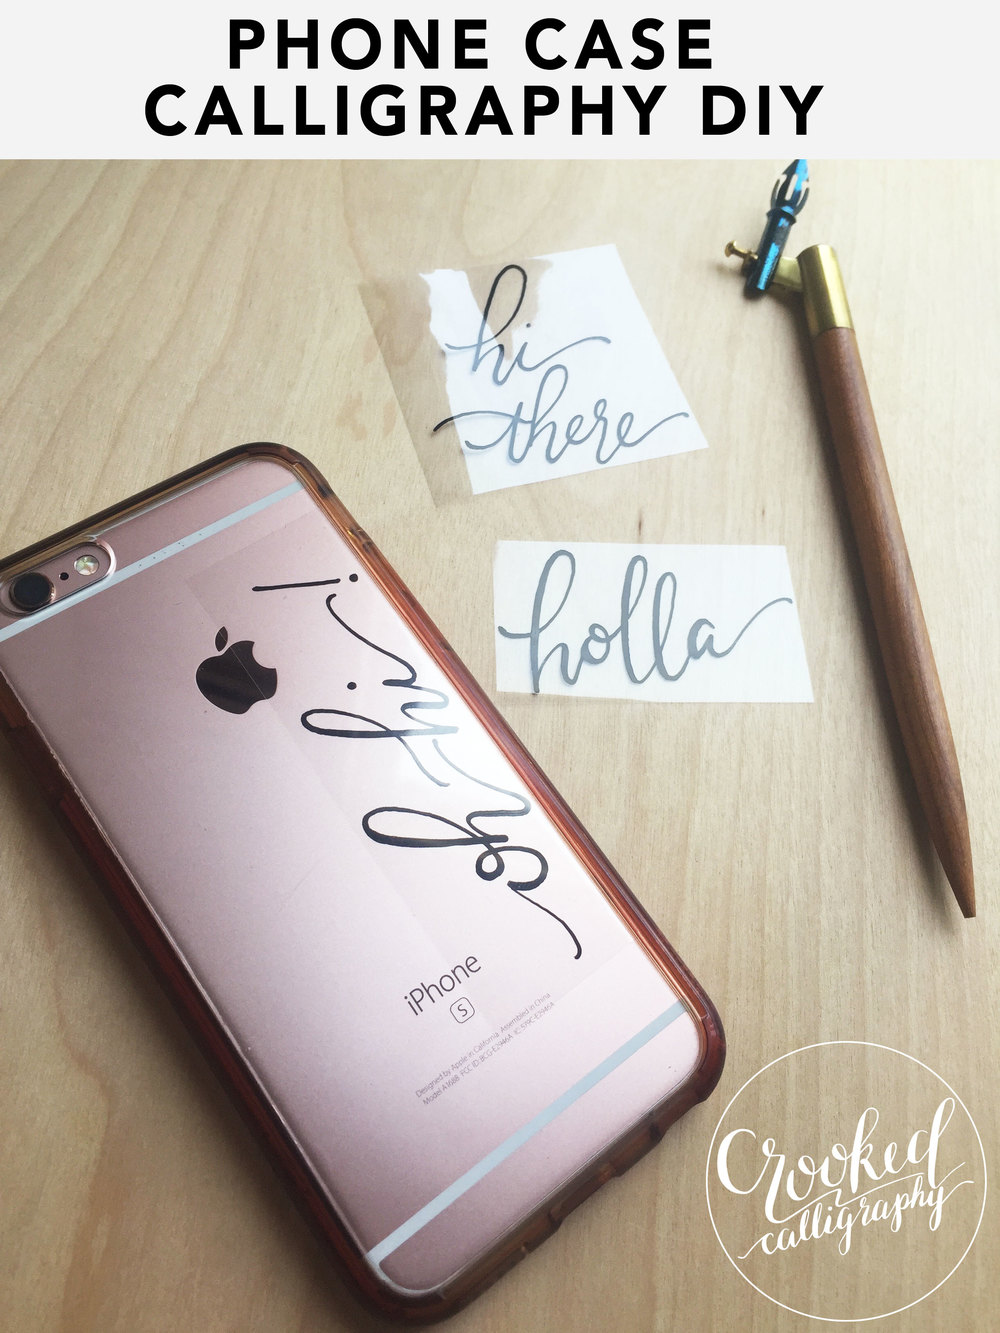 Diy calligraphy phone case crooked calligraphy for How to make a homemade phone case